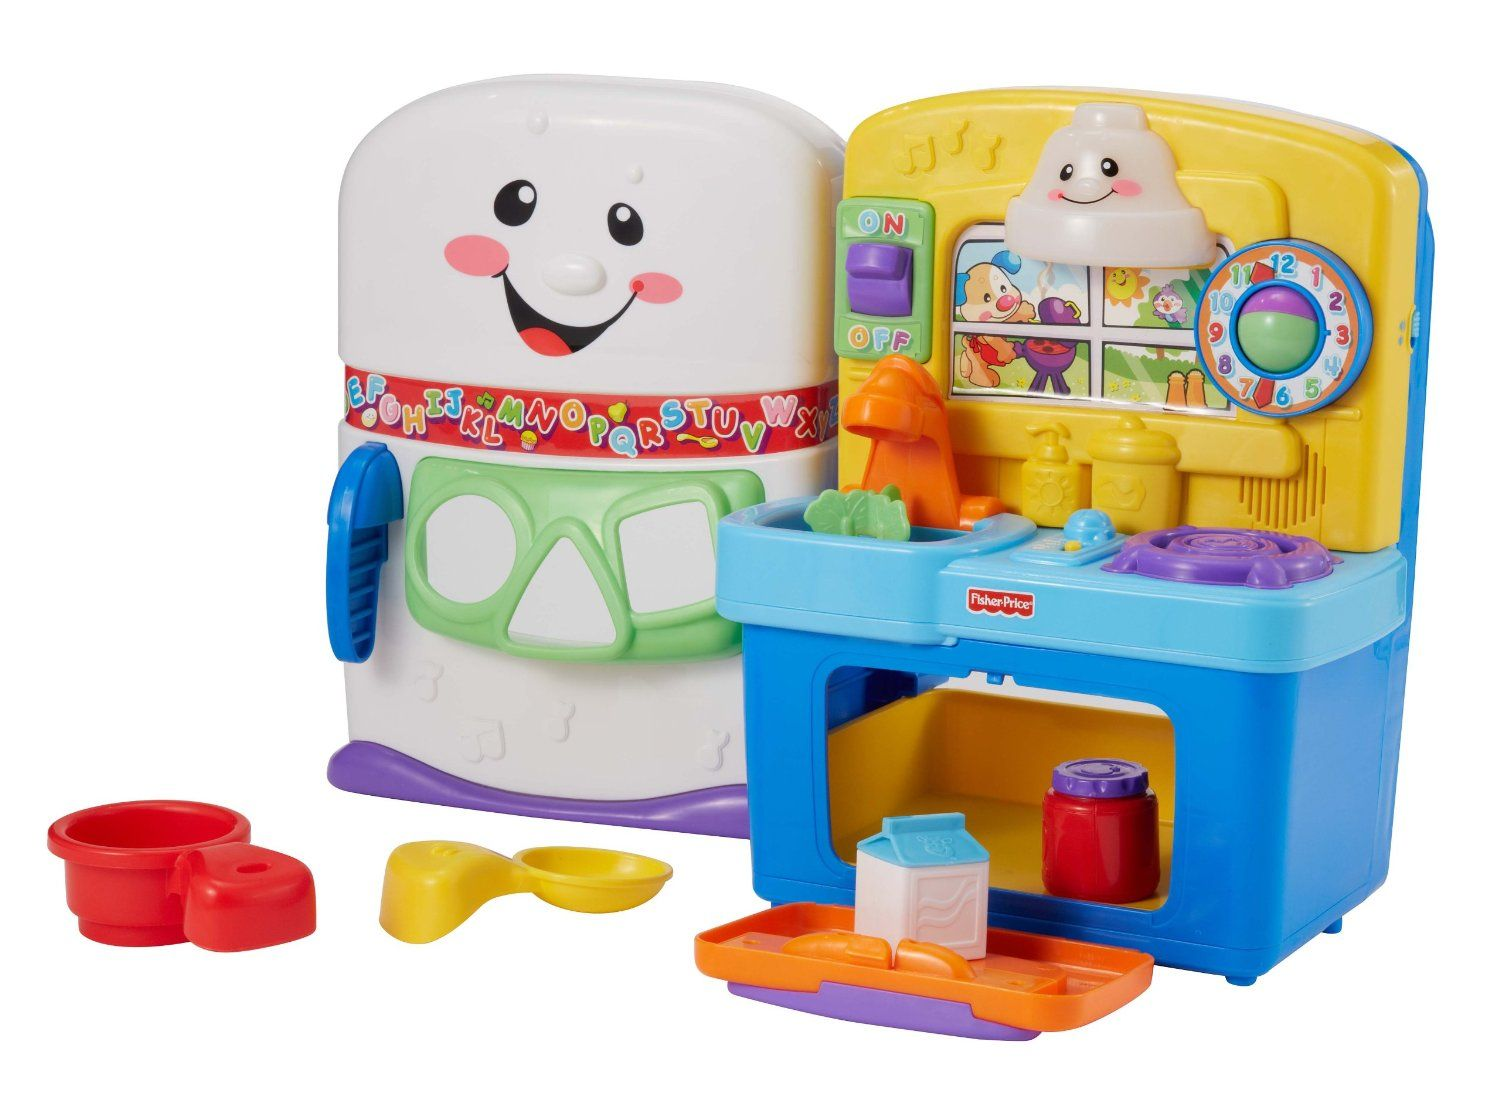 Laugh and Learn Baby Kitchen Review - Cookin Up Fun | Fisher price ...